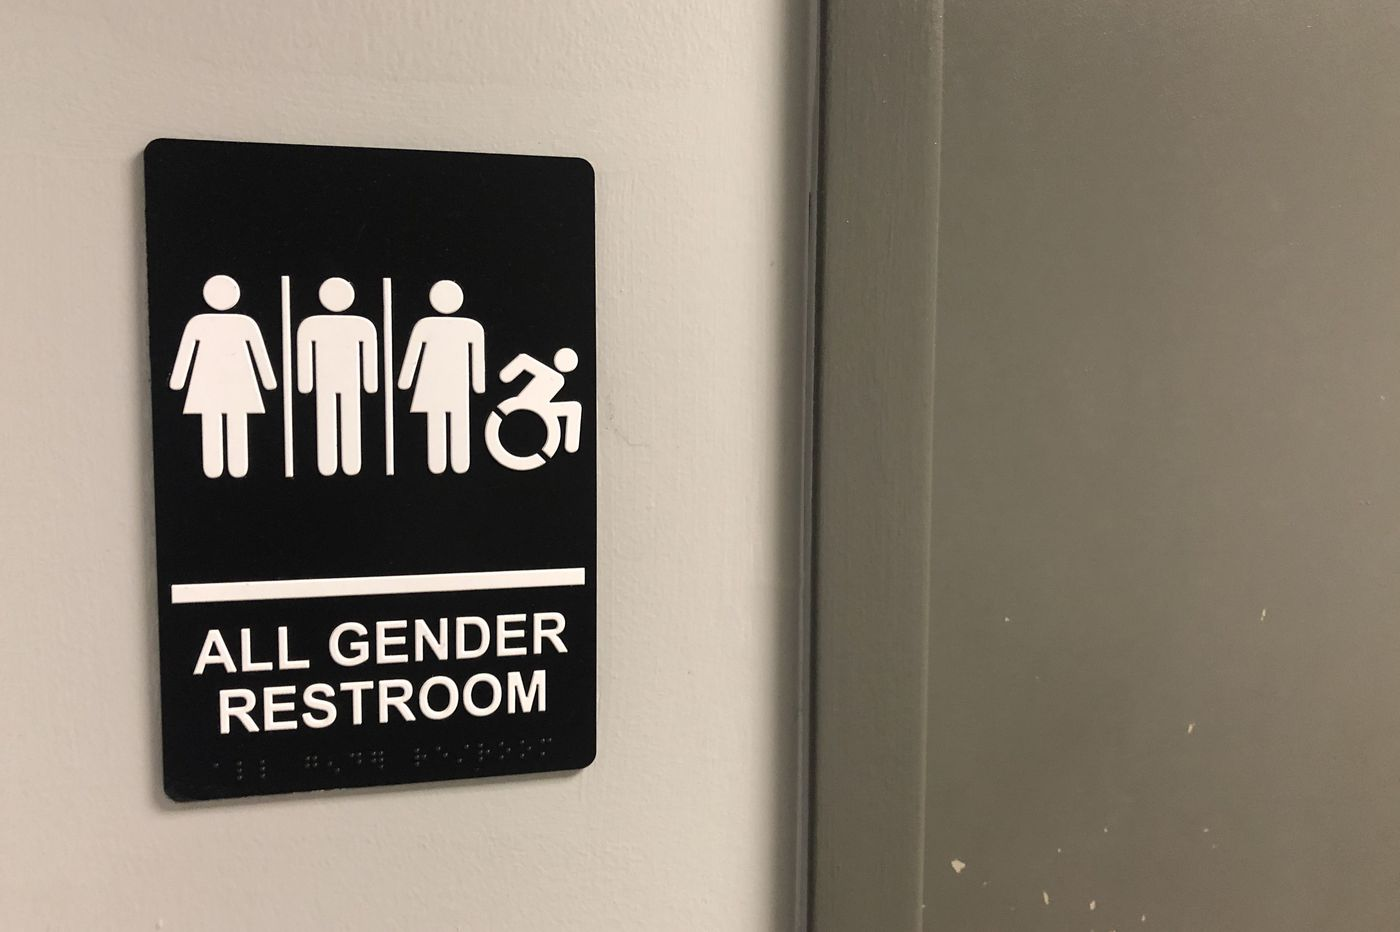 Philadelphia City Hall Has One Gender-neutral Bathroom